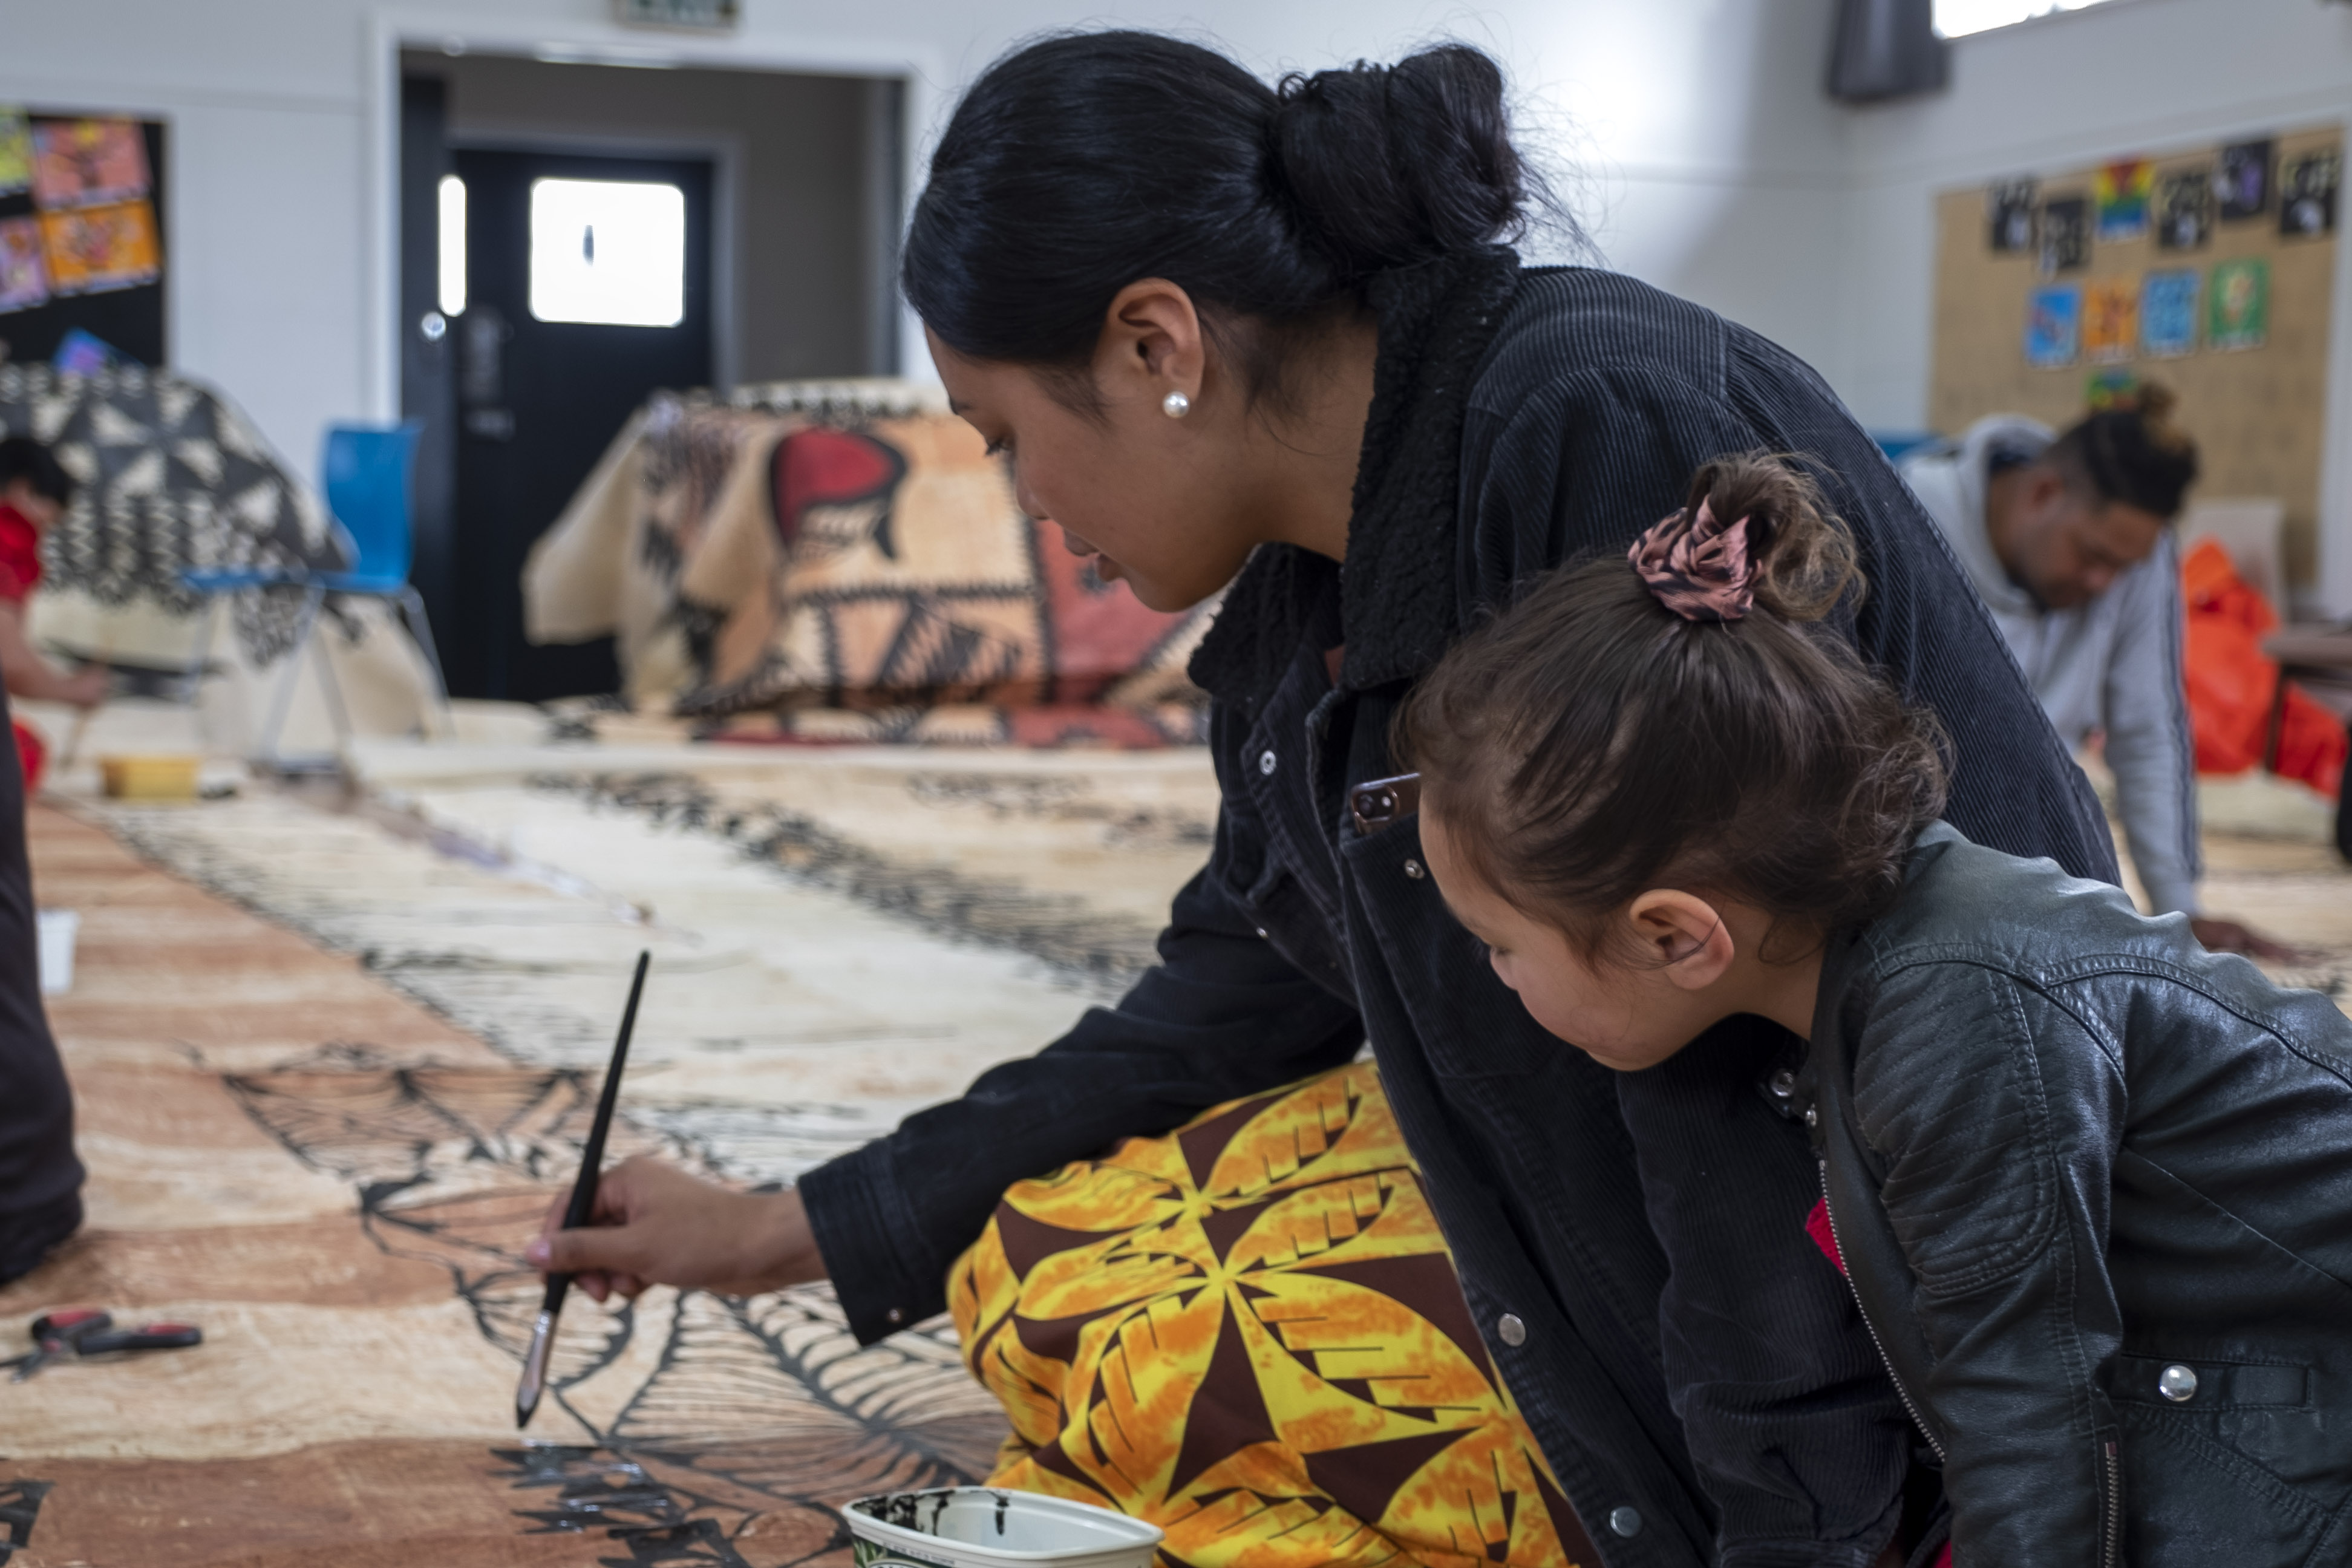 A woman painting black ink on a tapa cloth on the floor, she is being watched by a child.